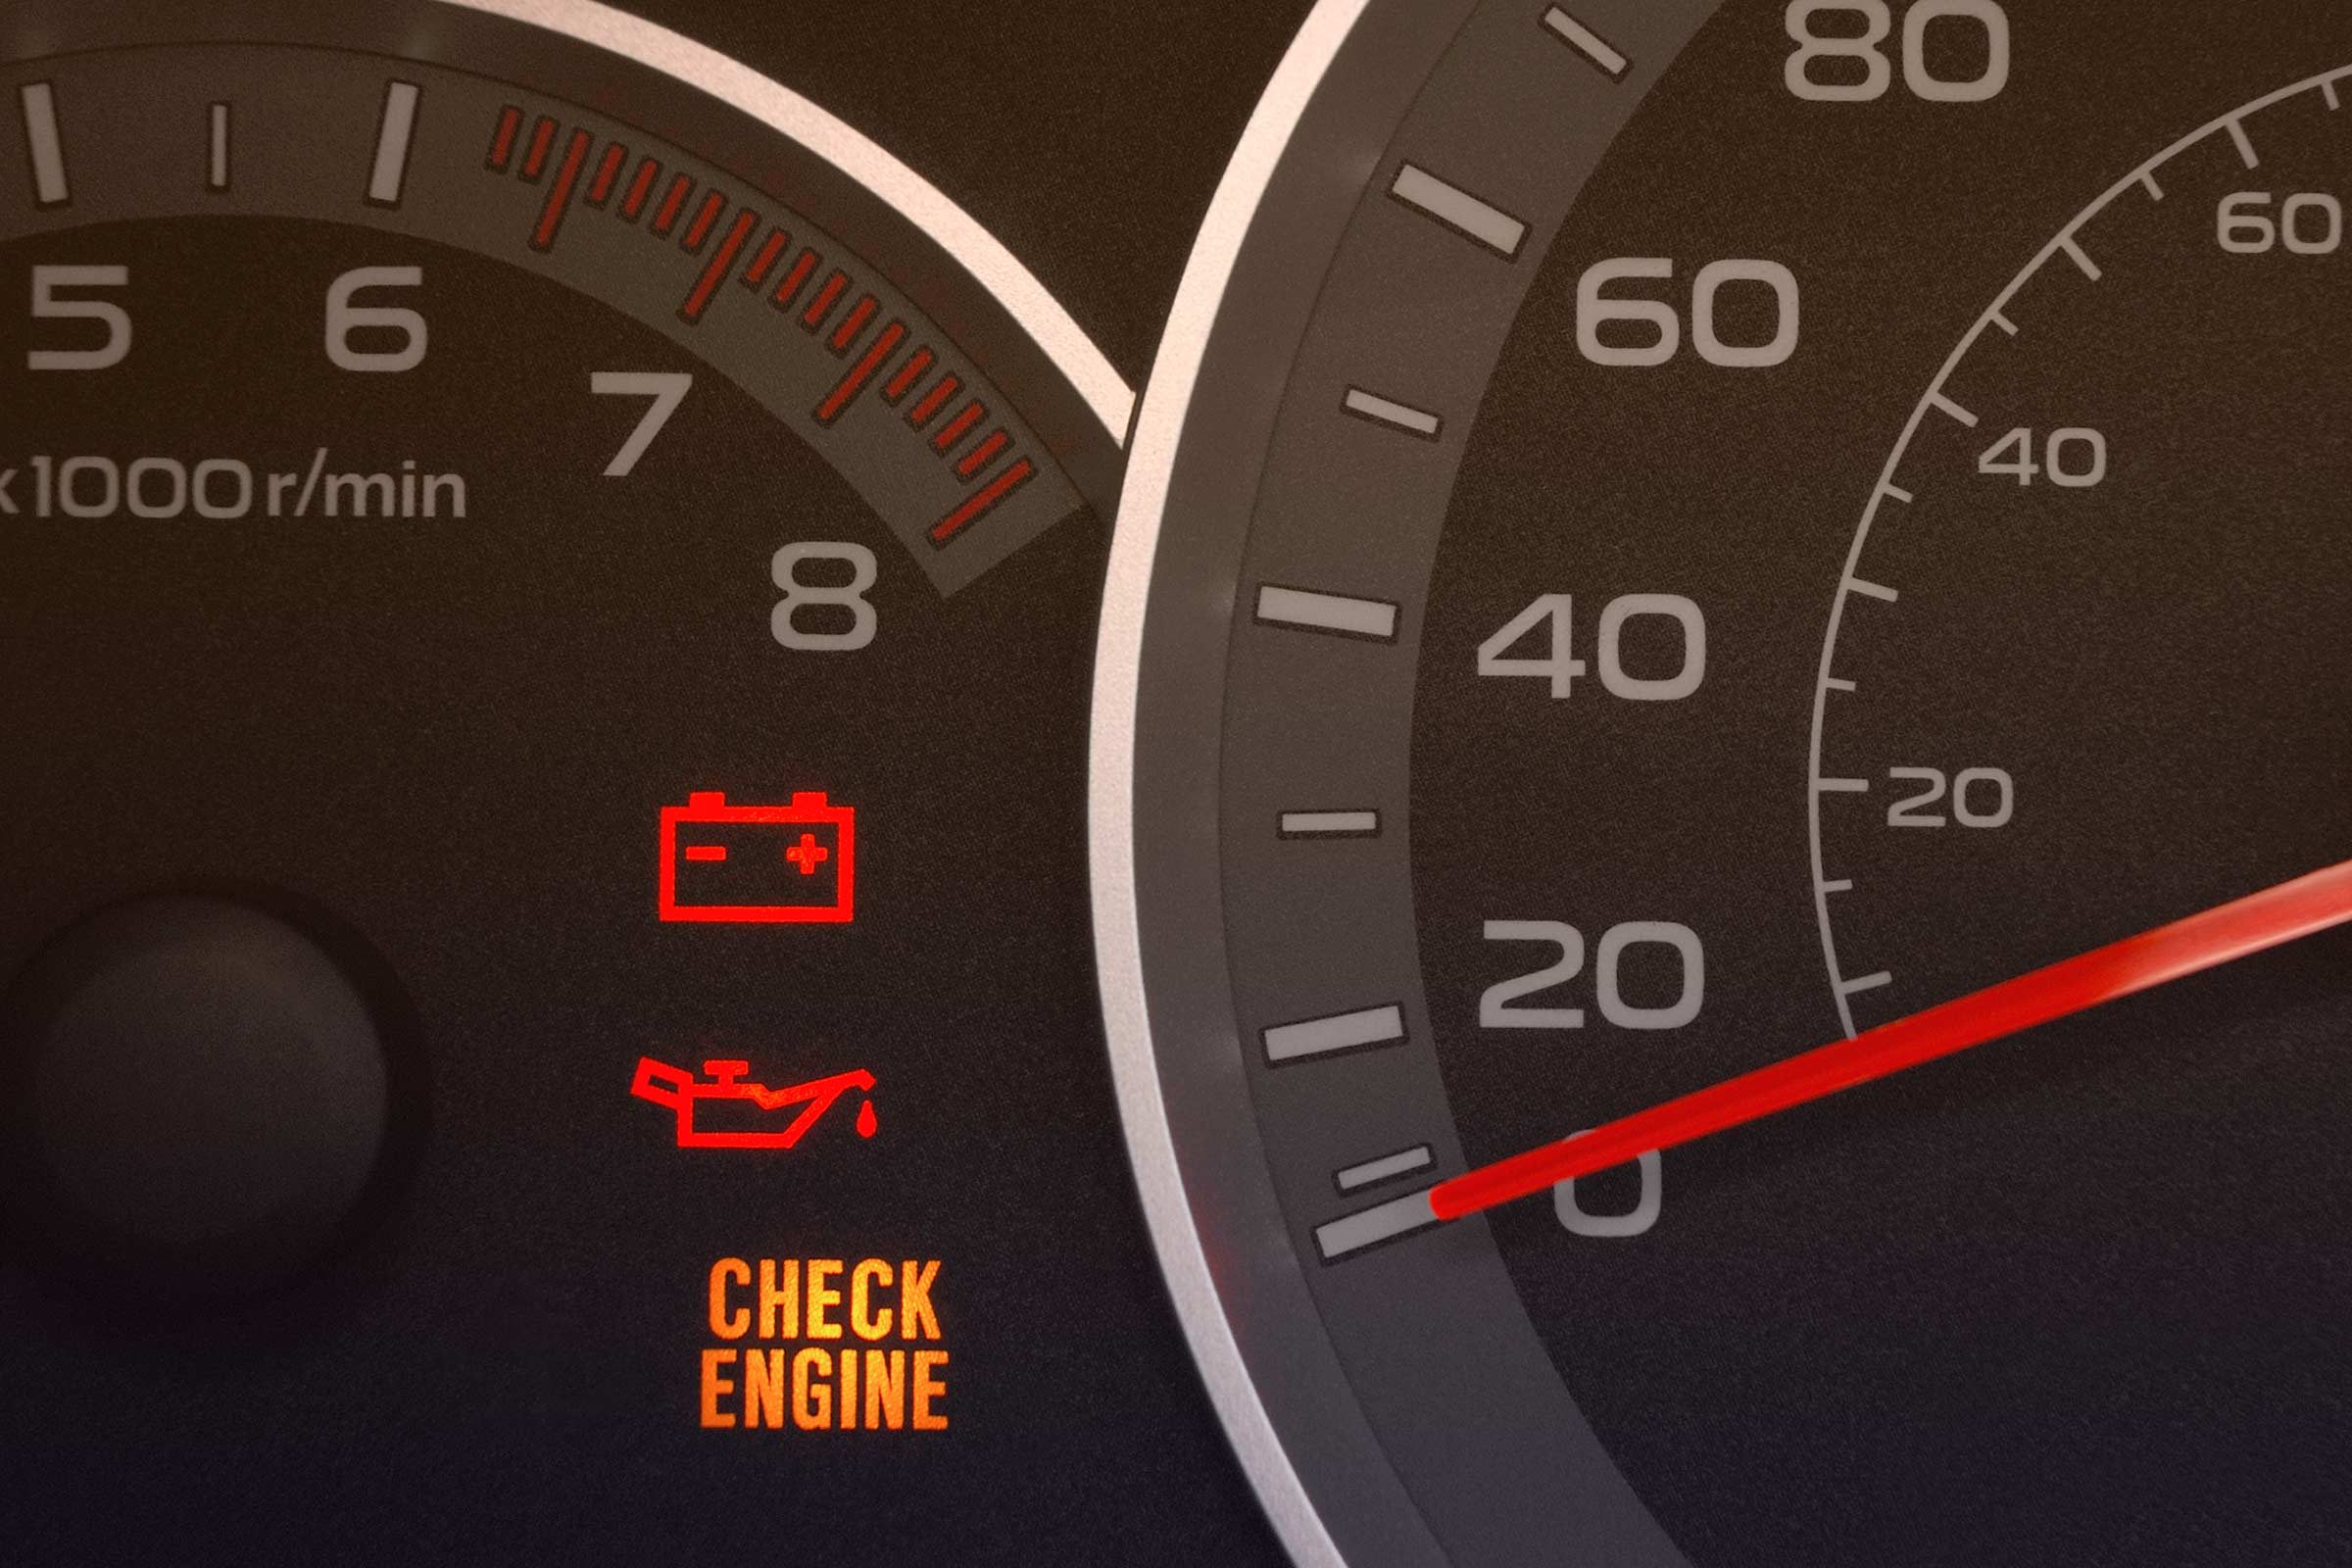 7 summer car tips every driver should know readers digest engine overheated biocorpaavc Images